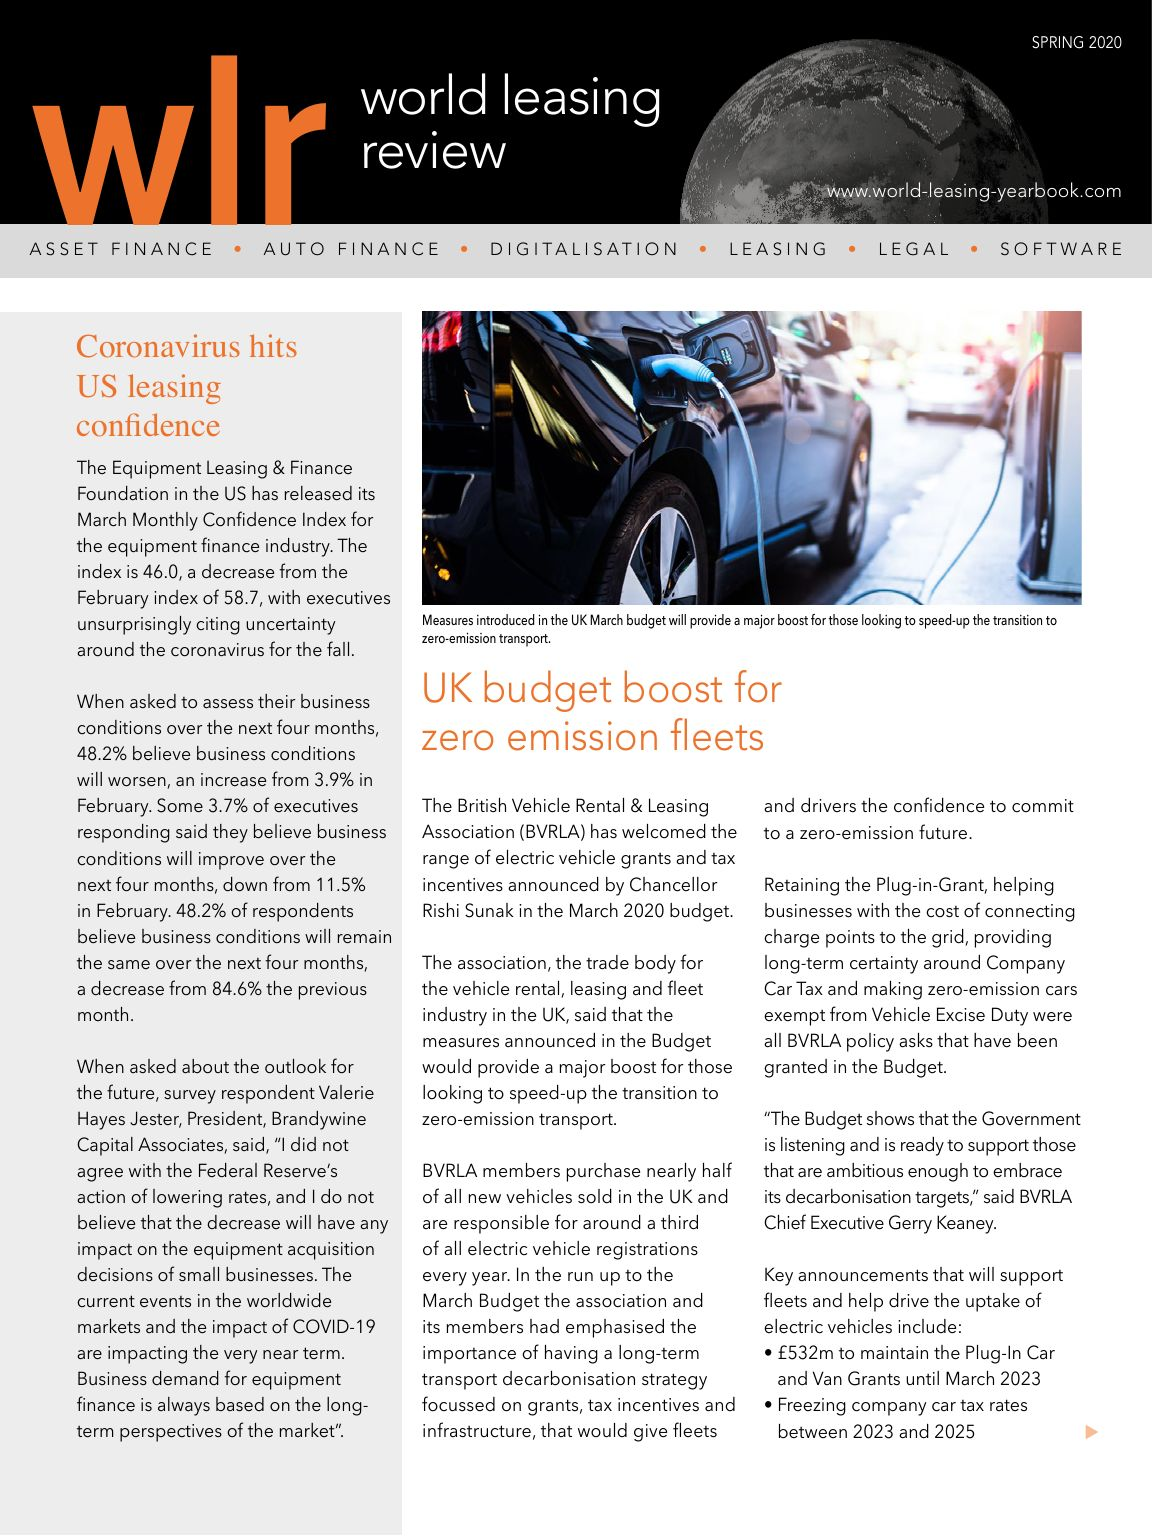 World Leasing Review Spring 2020 Issue